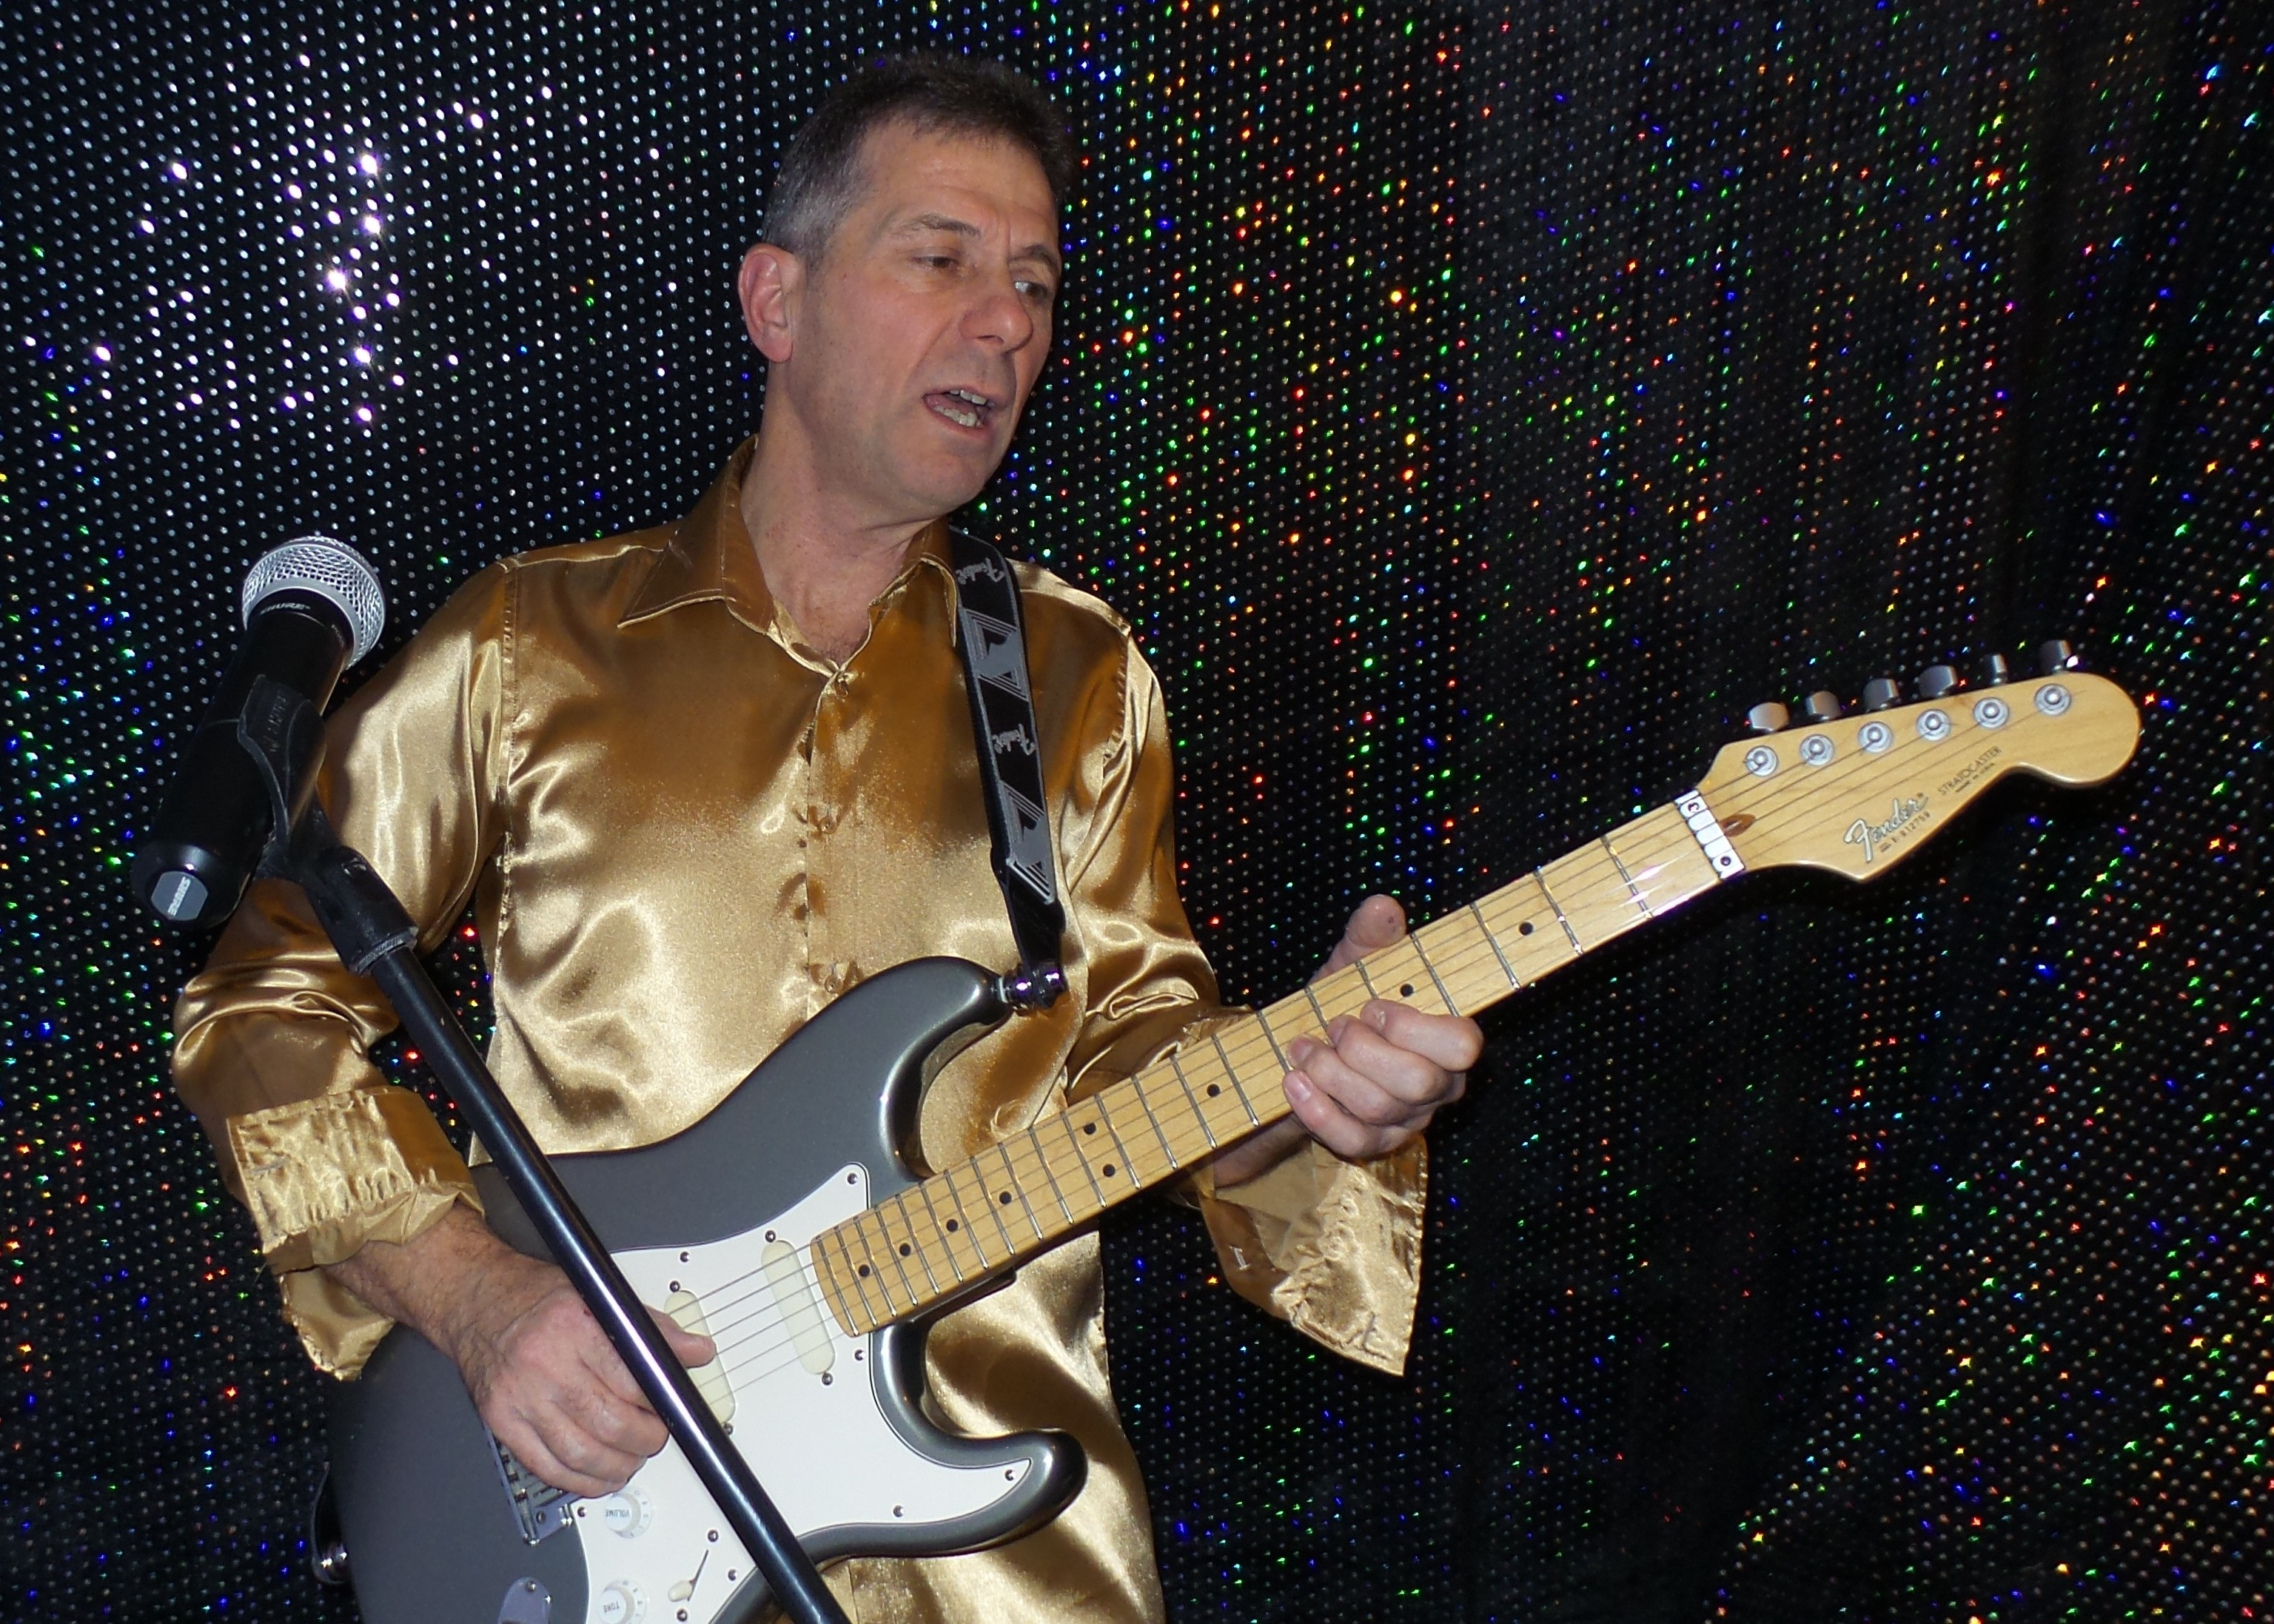 Phill Gold aka Phil Muswell Male Vocalist & Guitarist